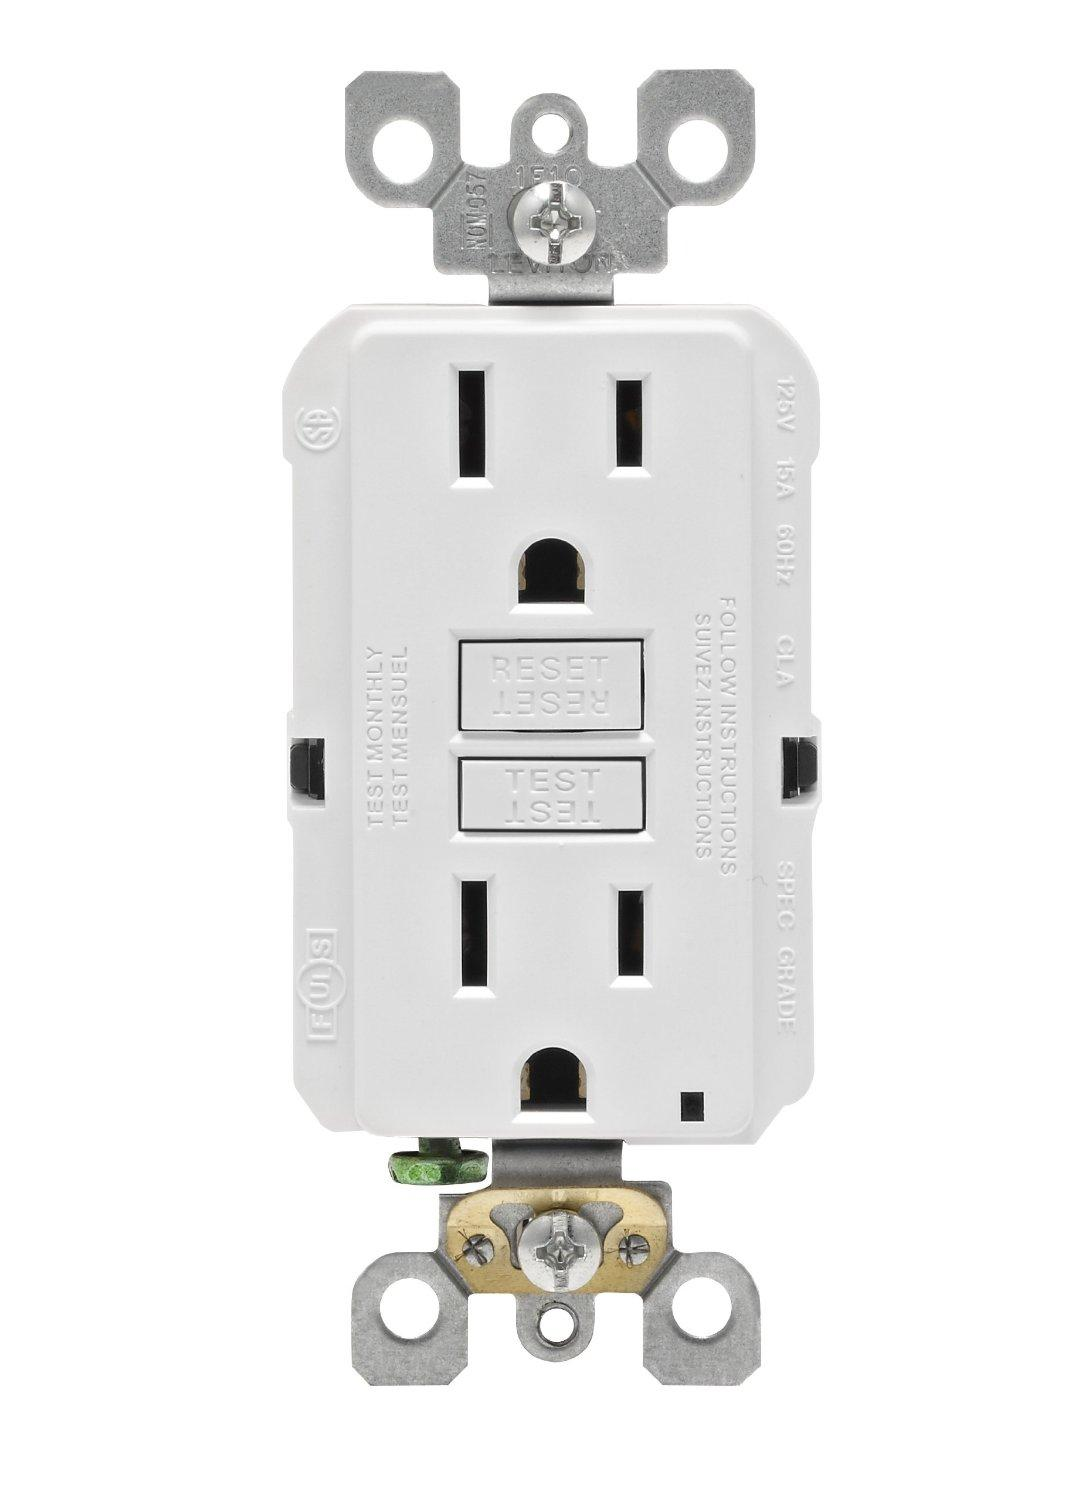 Leviton Gfnt1 E Self Test Smartlockpro Slim Gfci Non Tamper Framed Toggle Singlepole Switch White Home Depot Canada From The Manufacturer